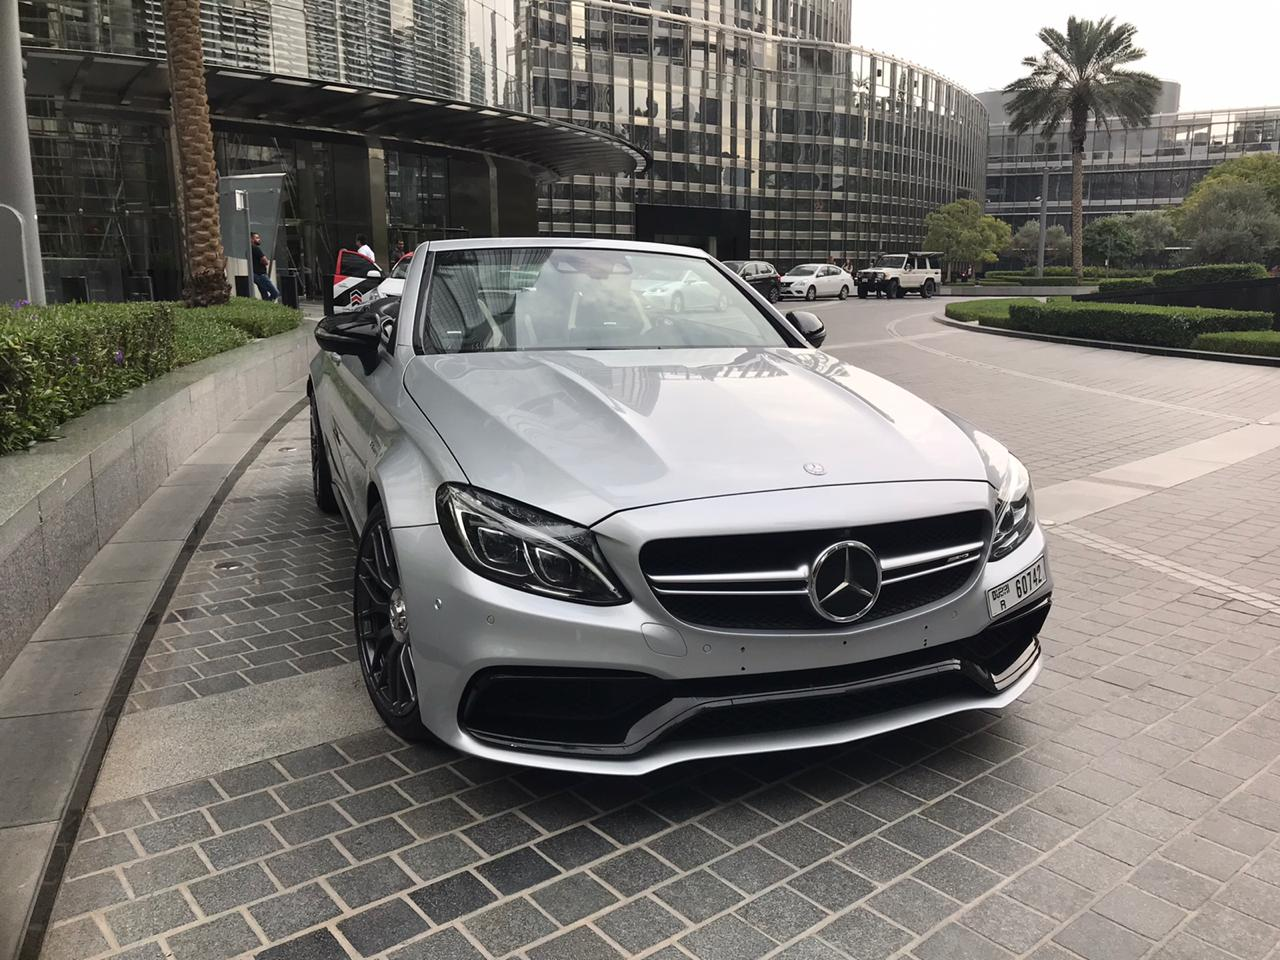 Mercedes C63s convertible Rental Dubai